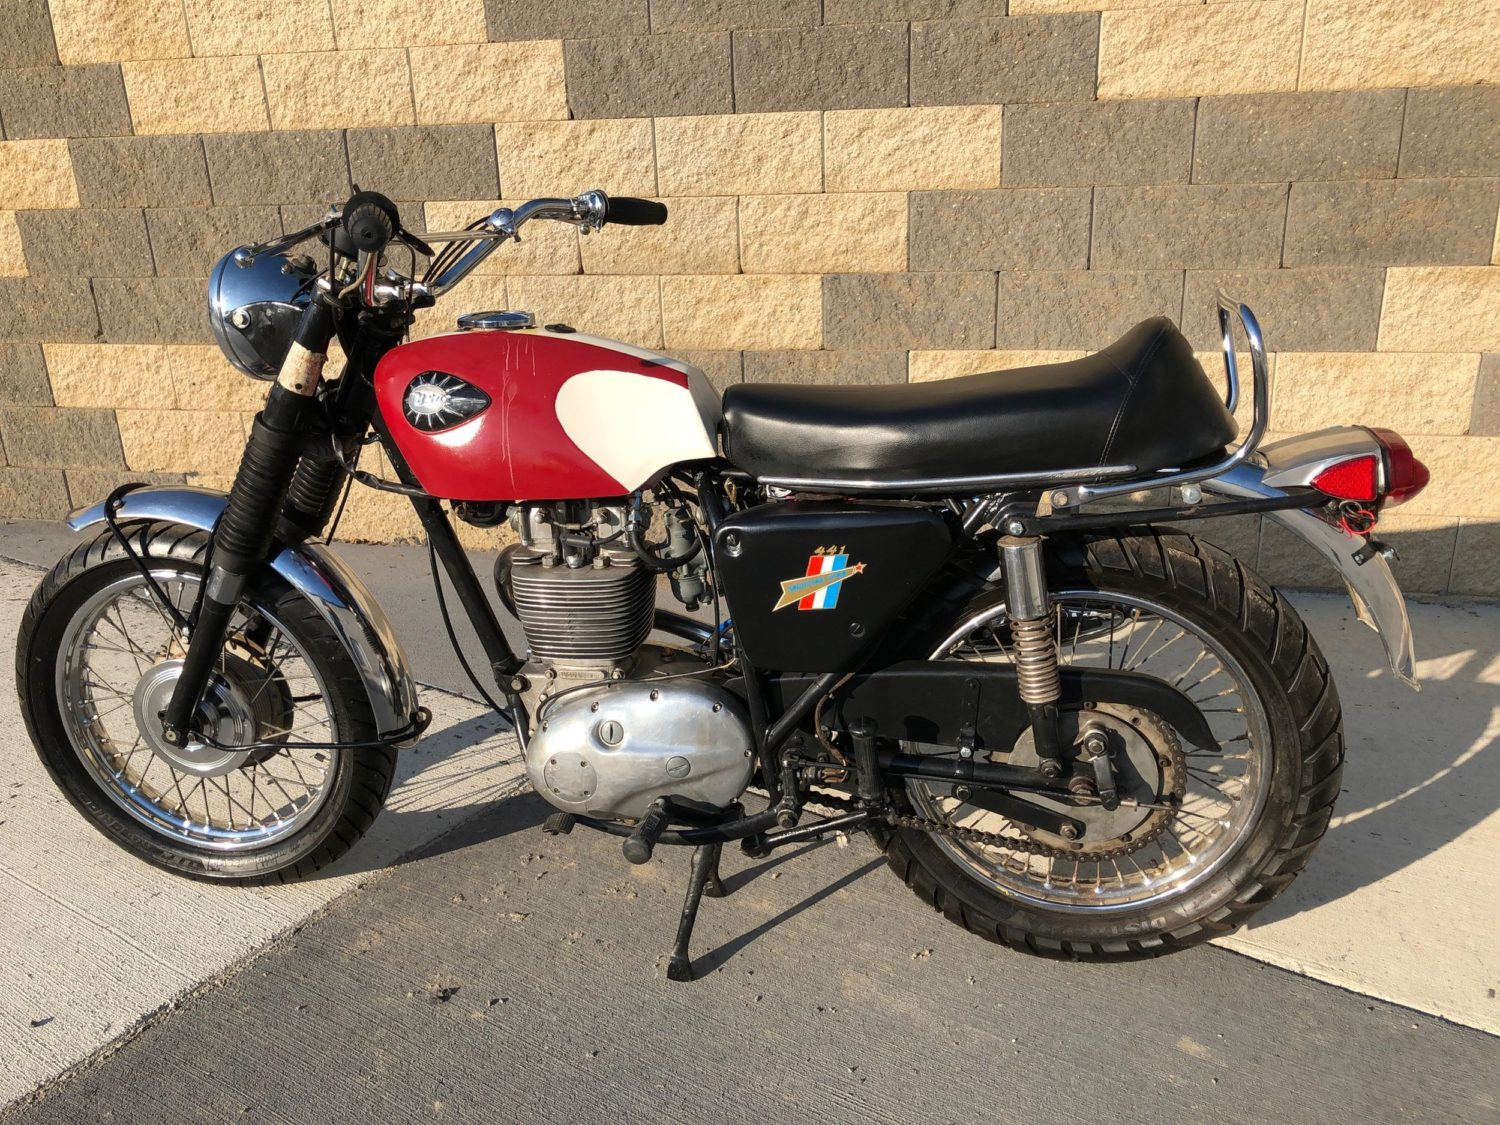 Motorcycle Consignment Auction- Classics & More! Baxter Cycle Open House Celebration! - image 2